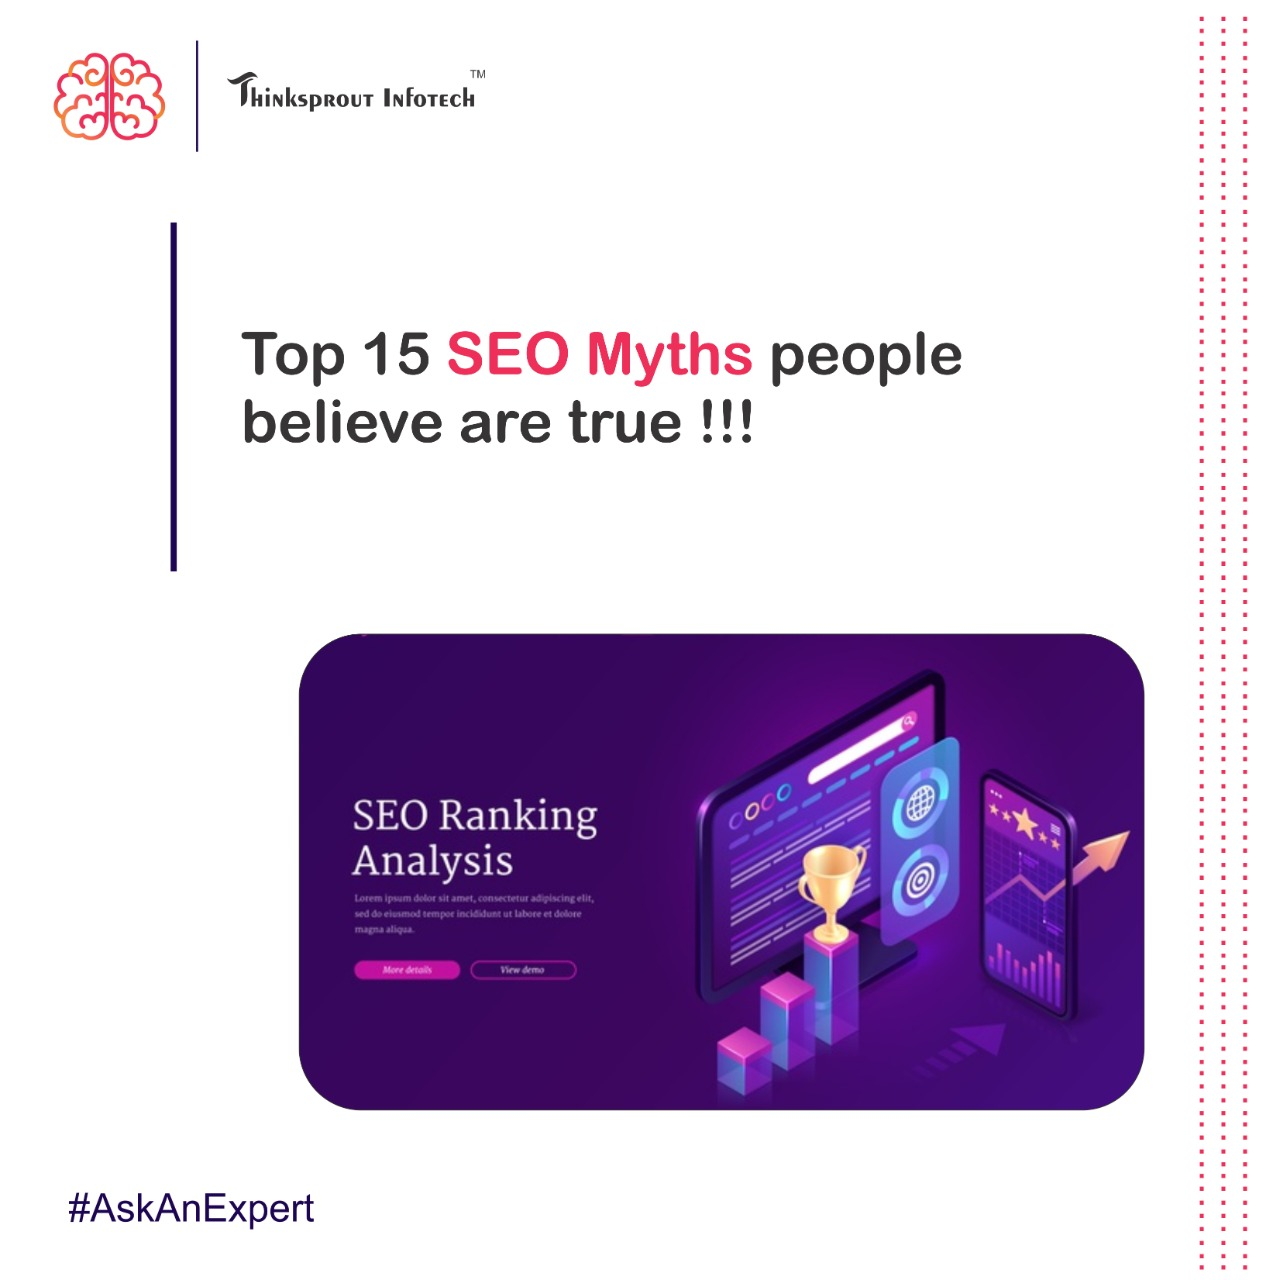 Top 15 SEO Myths people believe are true !!